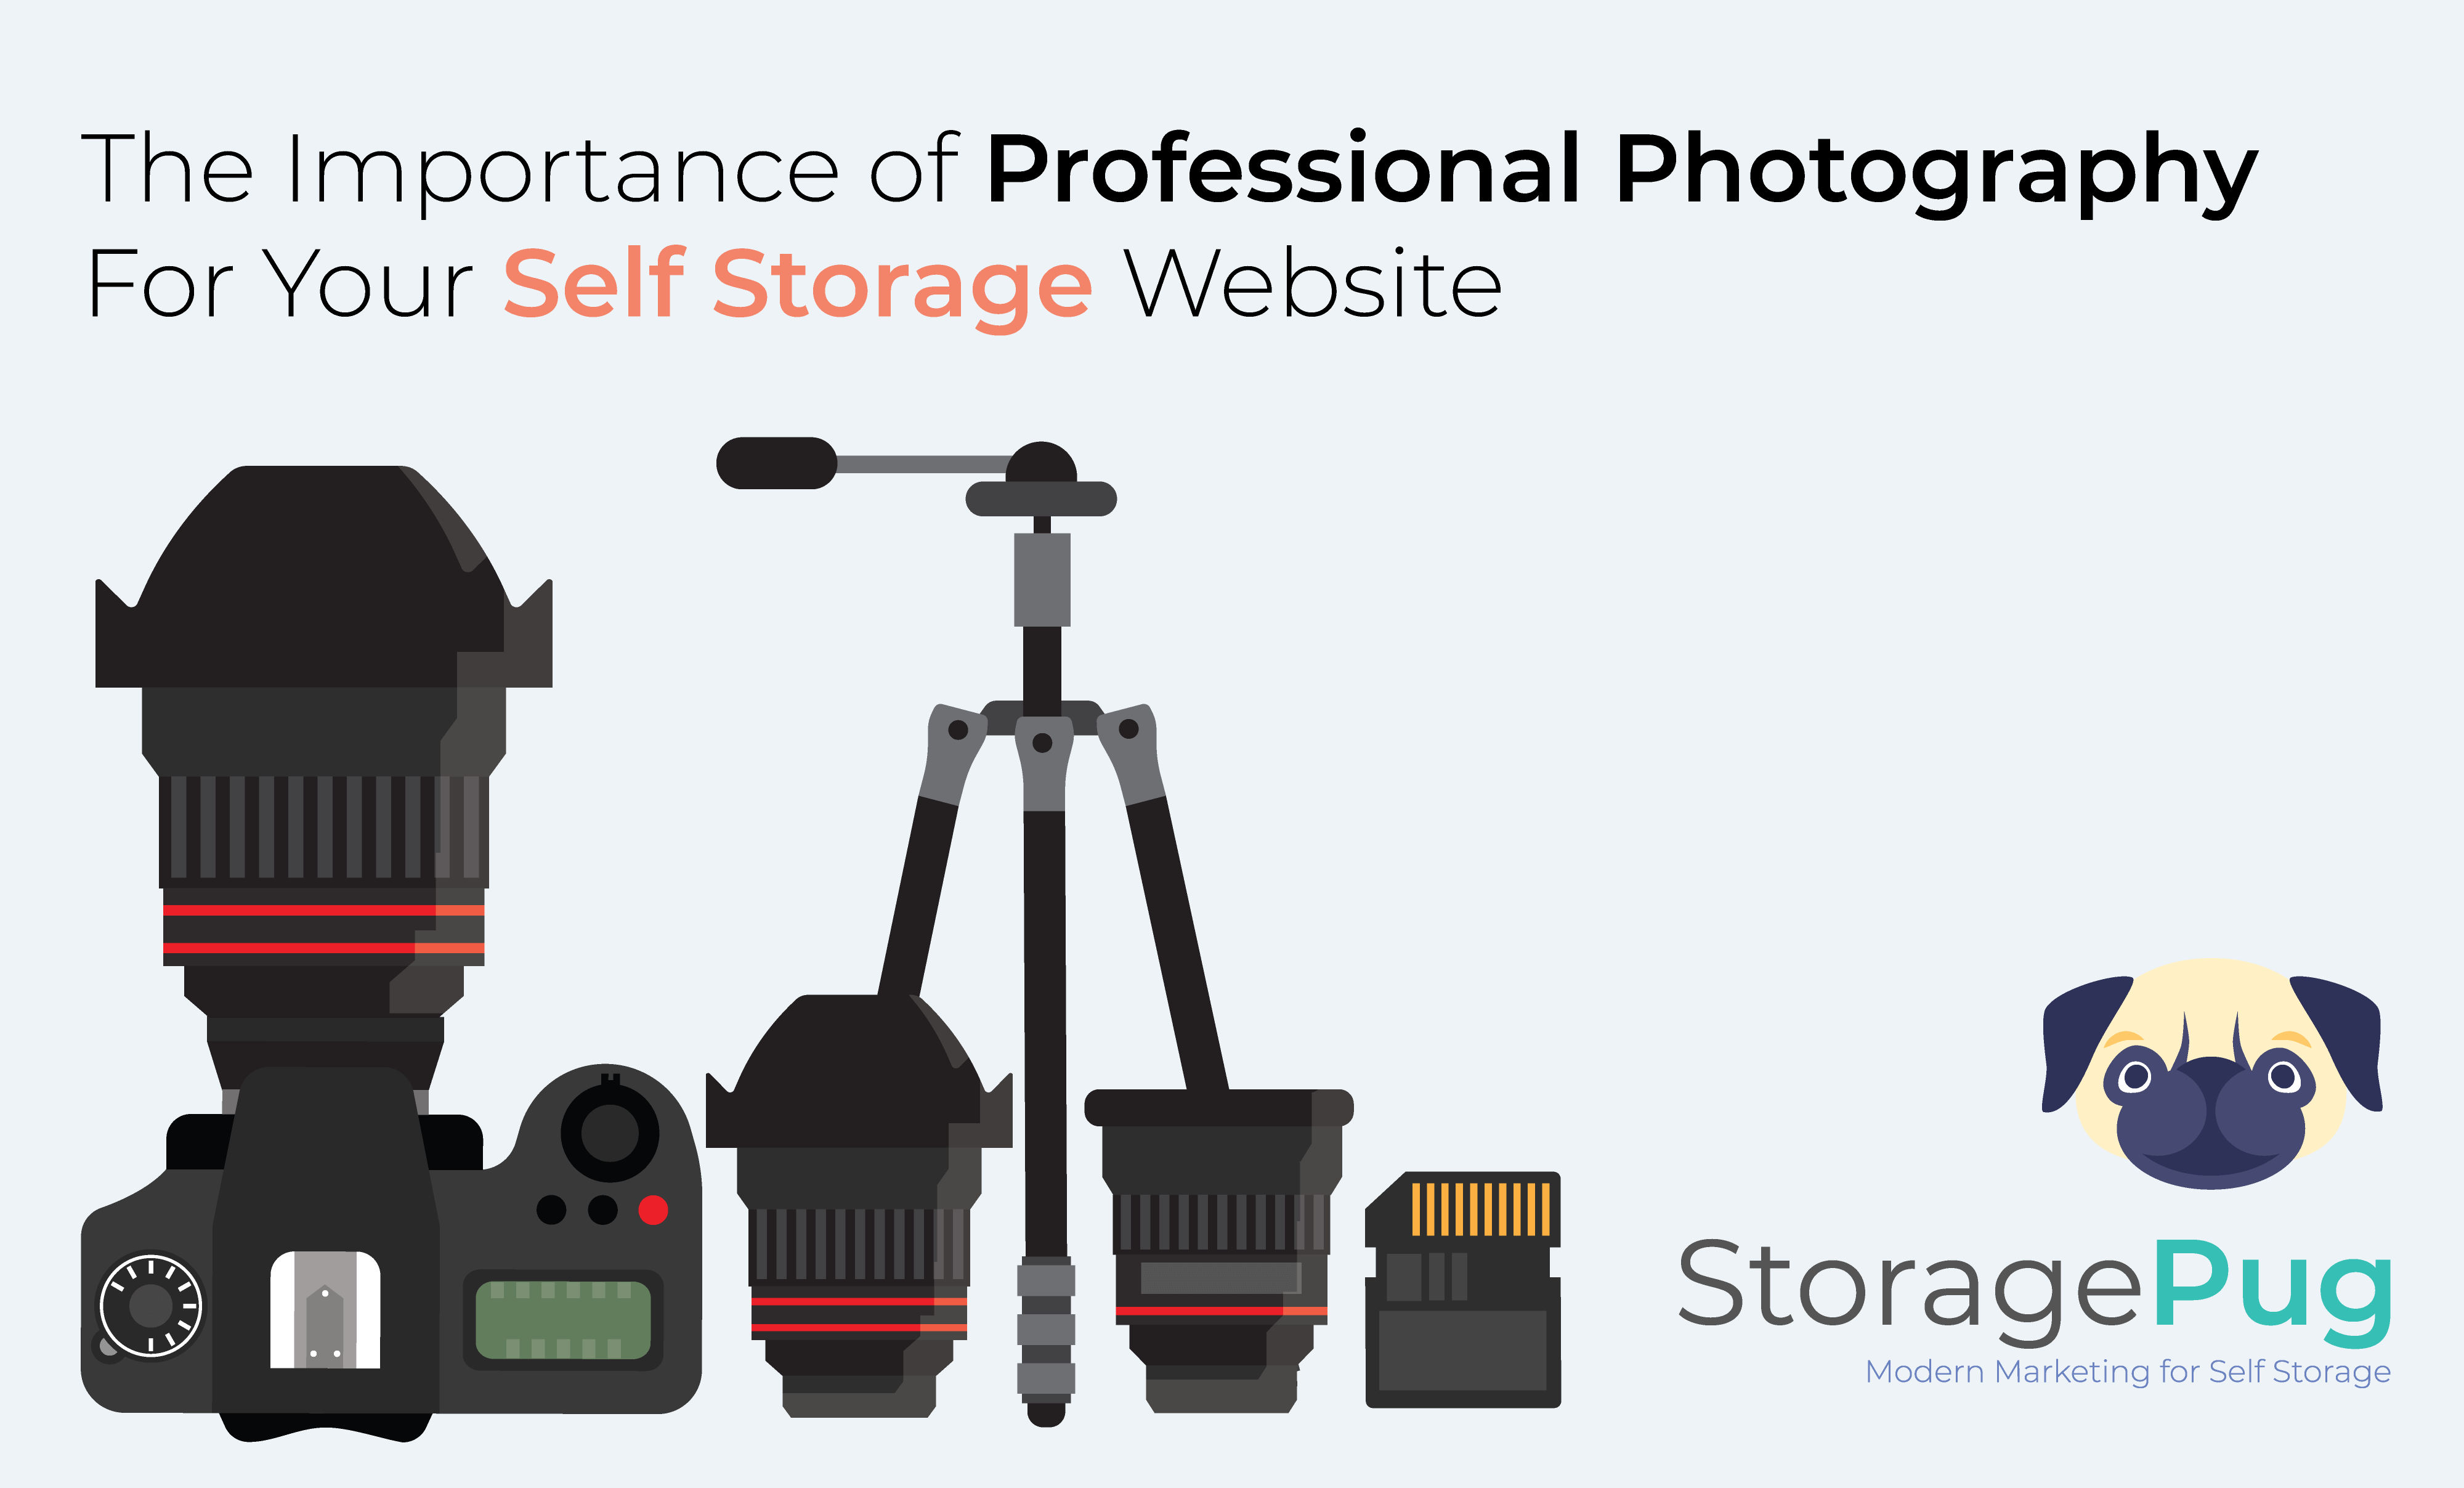 Do you have grainy or pixellated pictures on your website- The photos on your self storage website or marketing materials will be the first thing potential customers see before visiting your property.